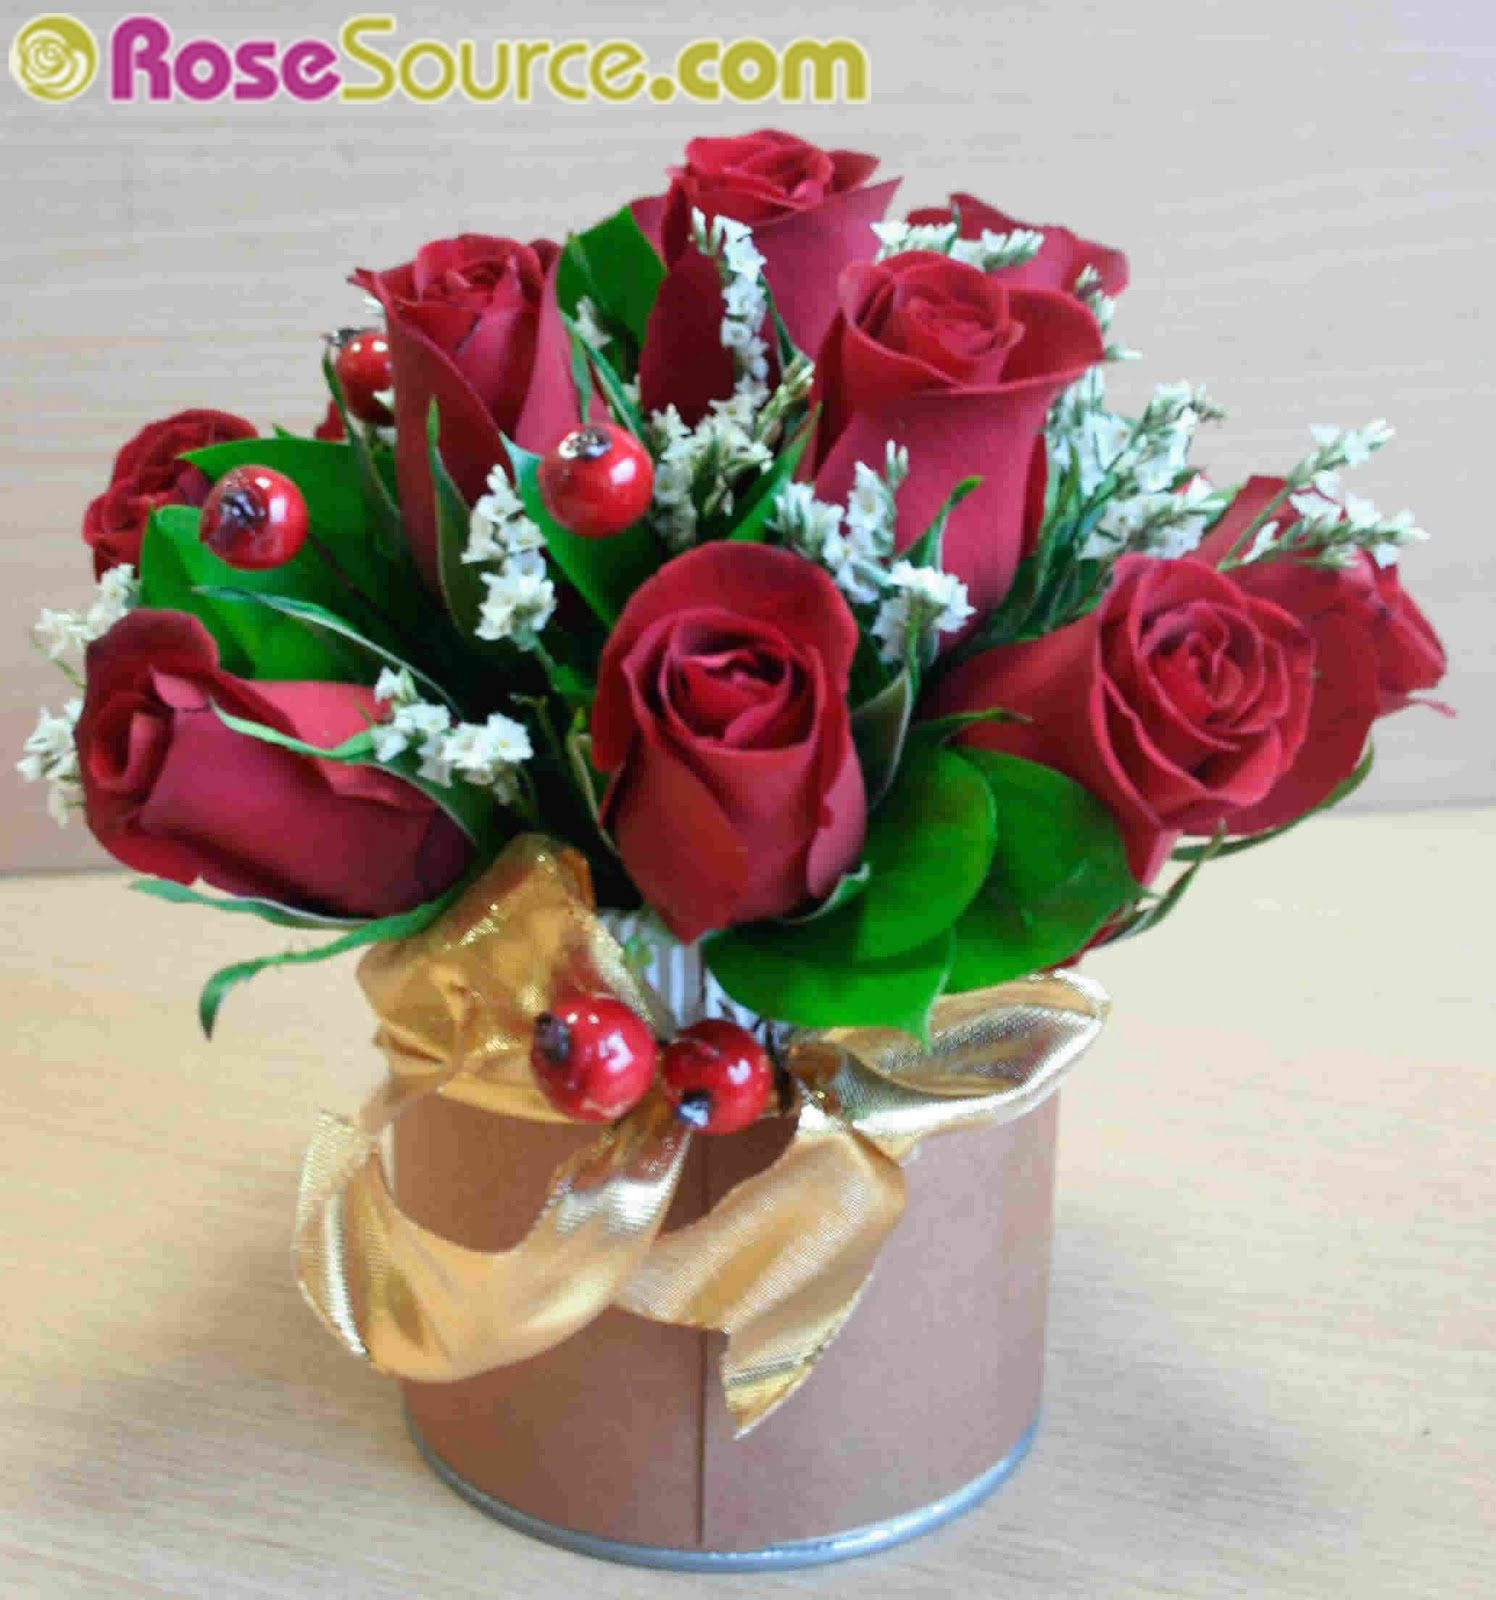 RoseSource.com: Now is the perfect time to order Holiday Flowers ...